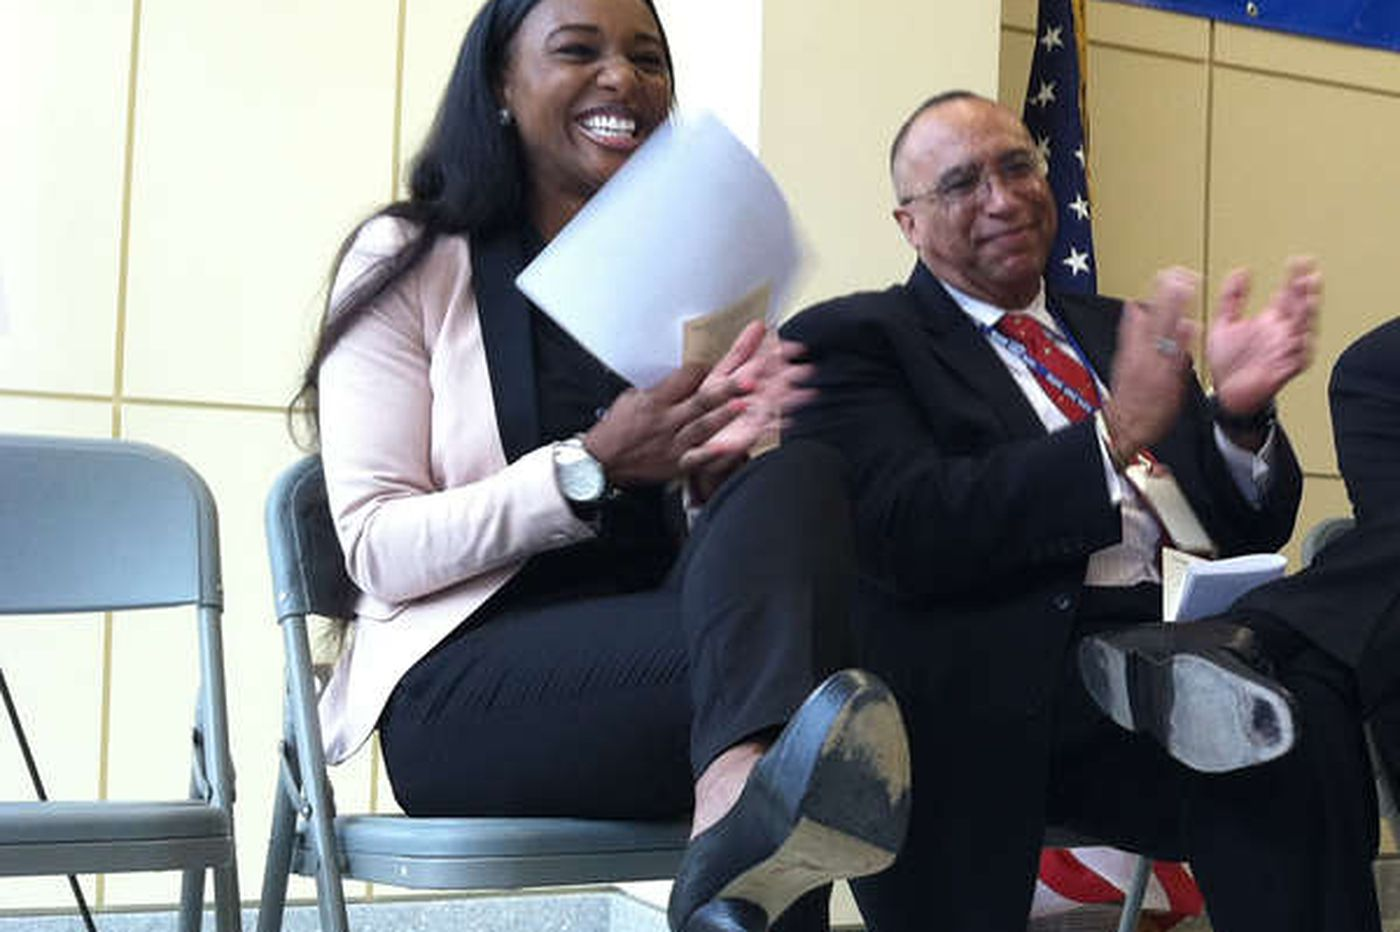 From shackles to social worker: One Philly woman's story